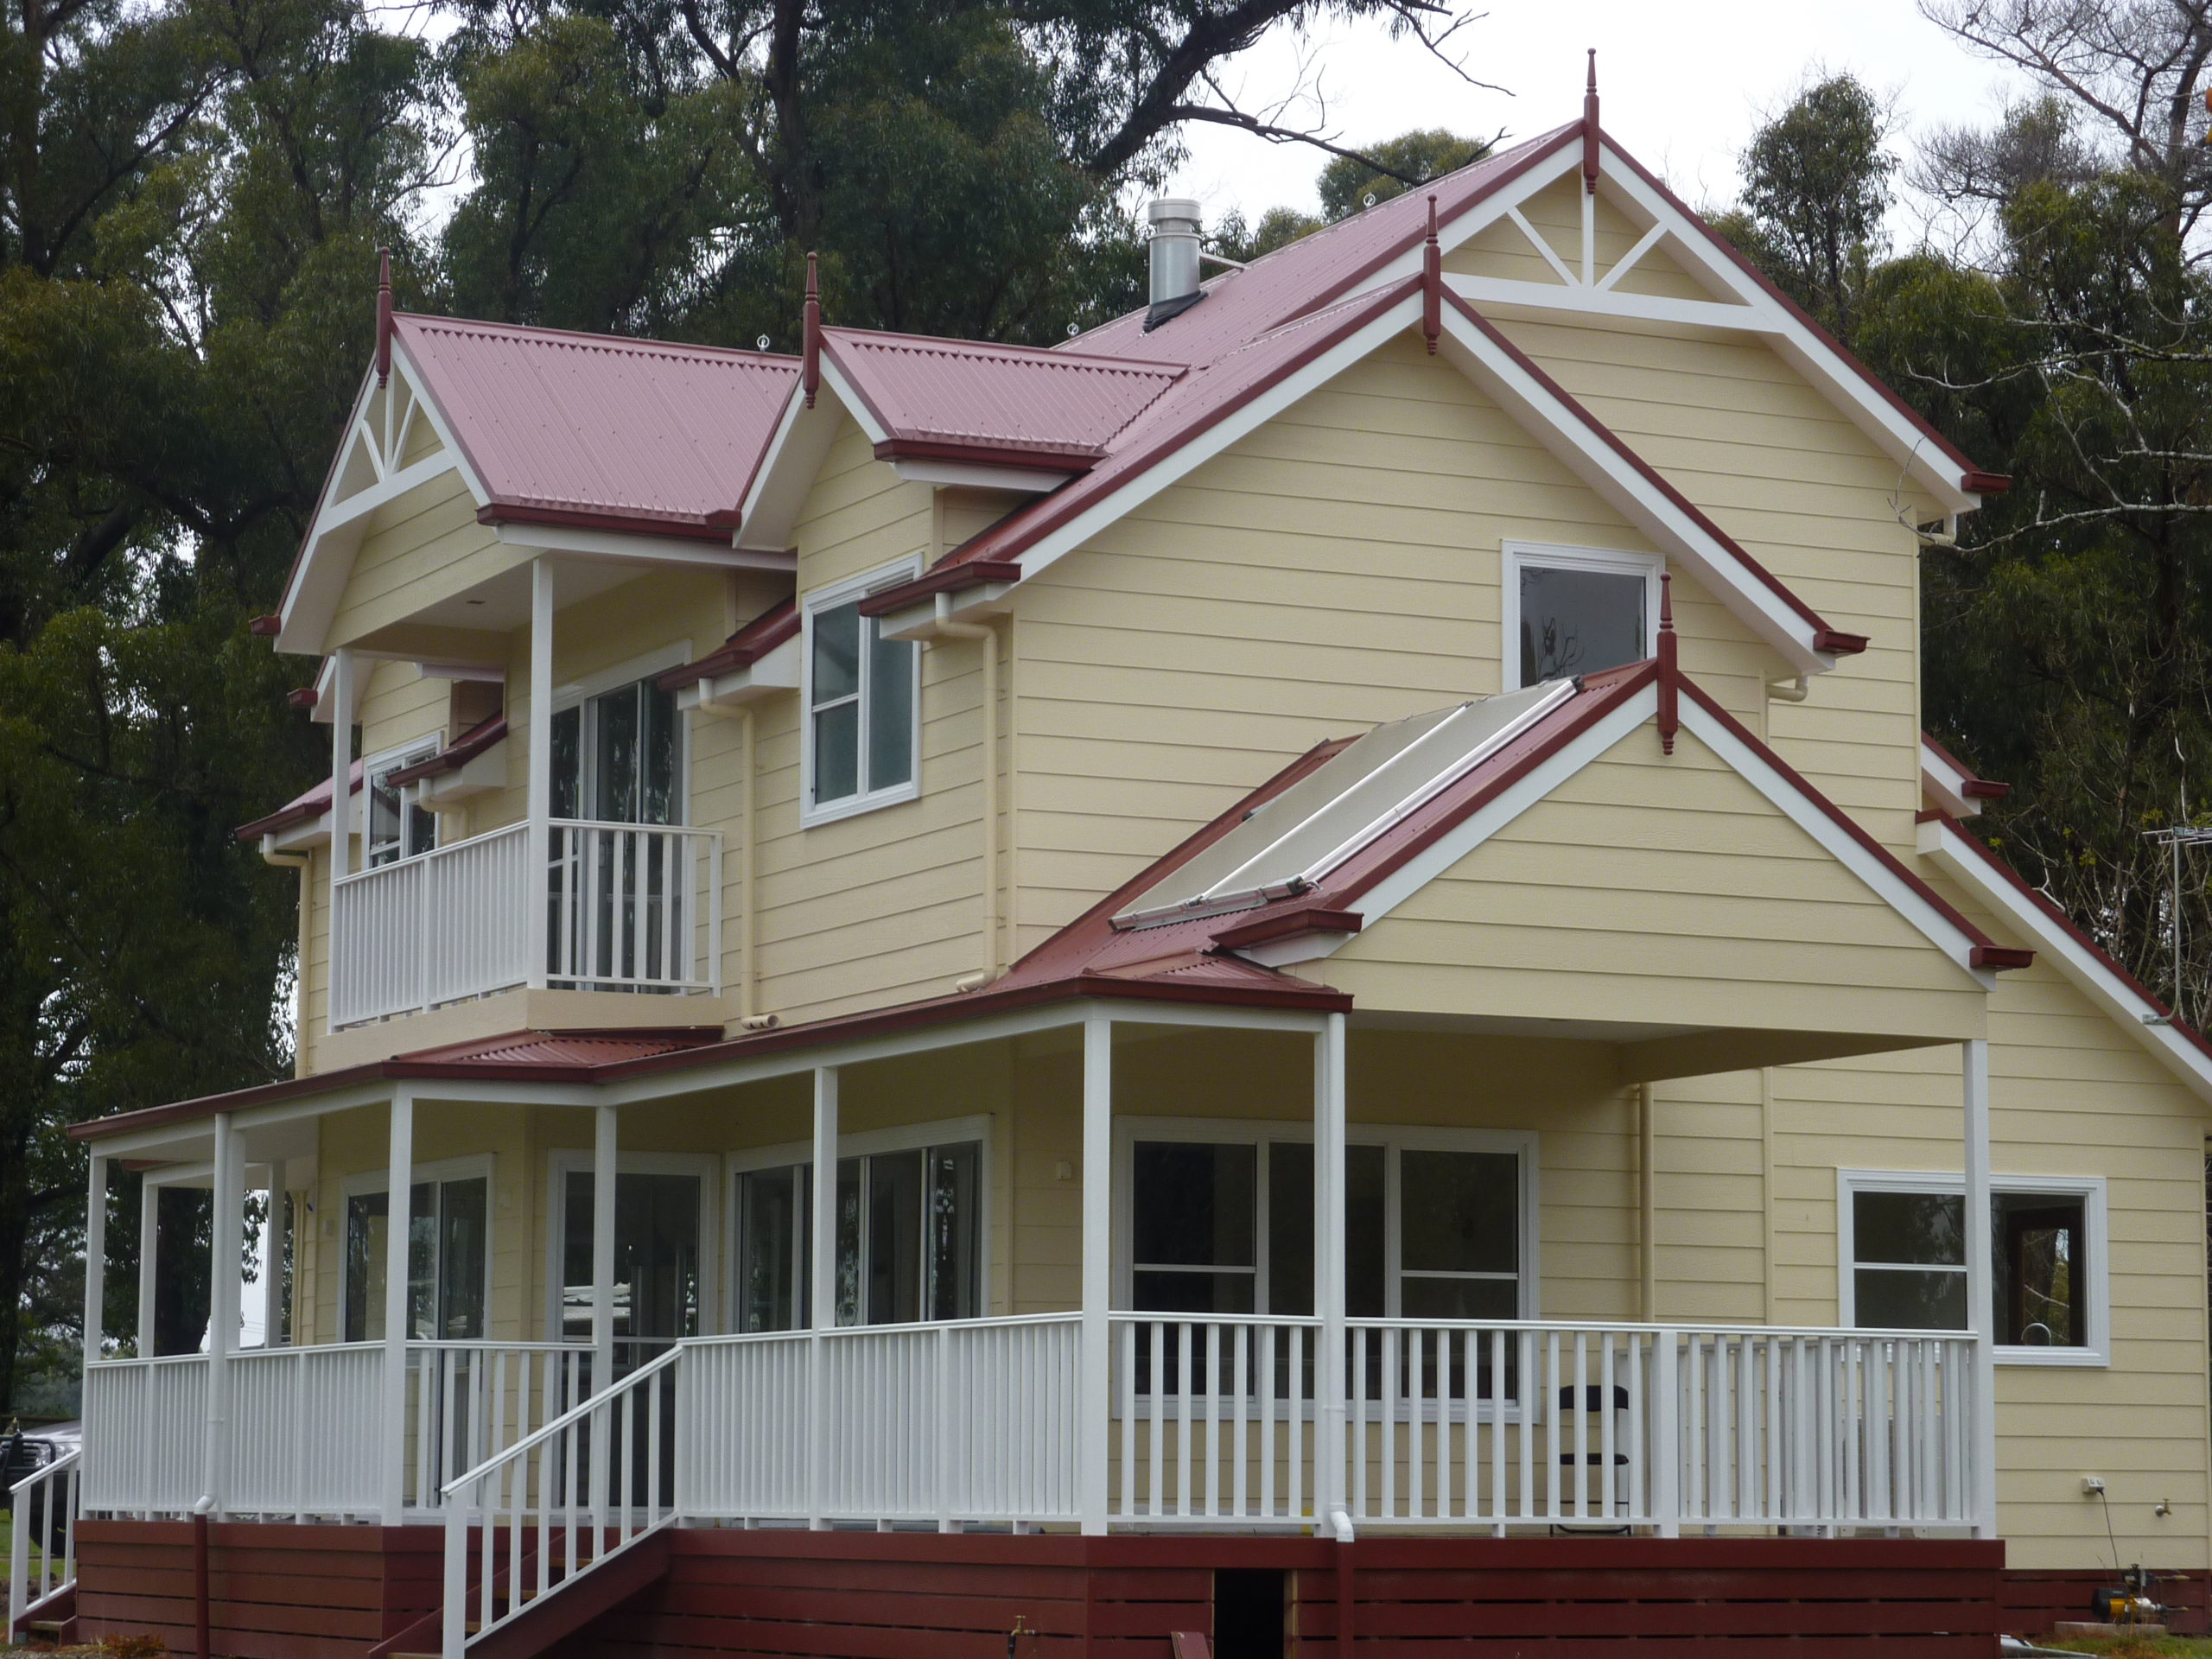 Kinglake - Finials and fenestrations adorn the dormers and gables, and timber balustrades built by Farm Houses of Australia